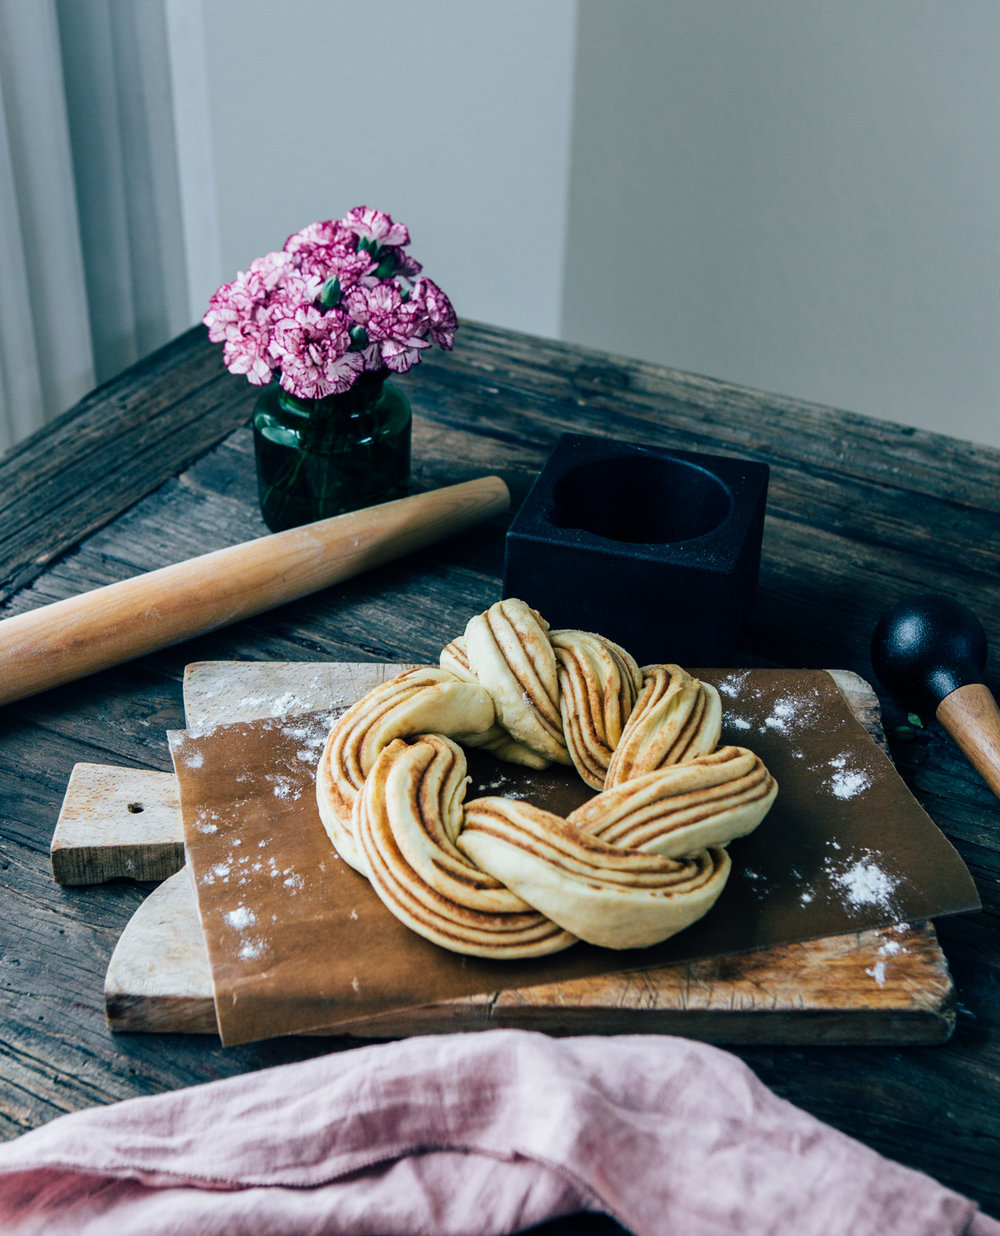 Cinnamon and Cardamom Wreath by Madeline Lu - @lumadeline